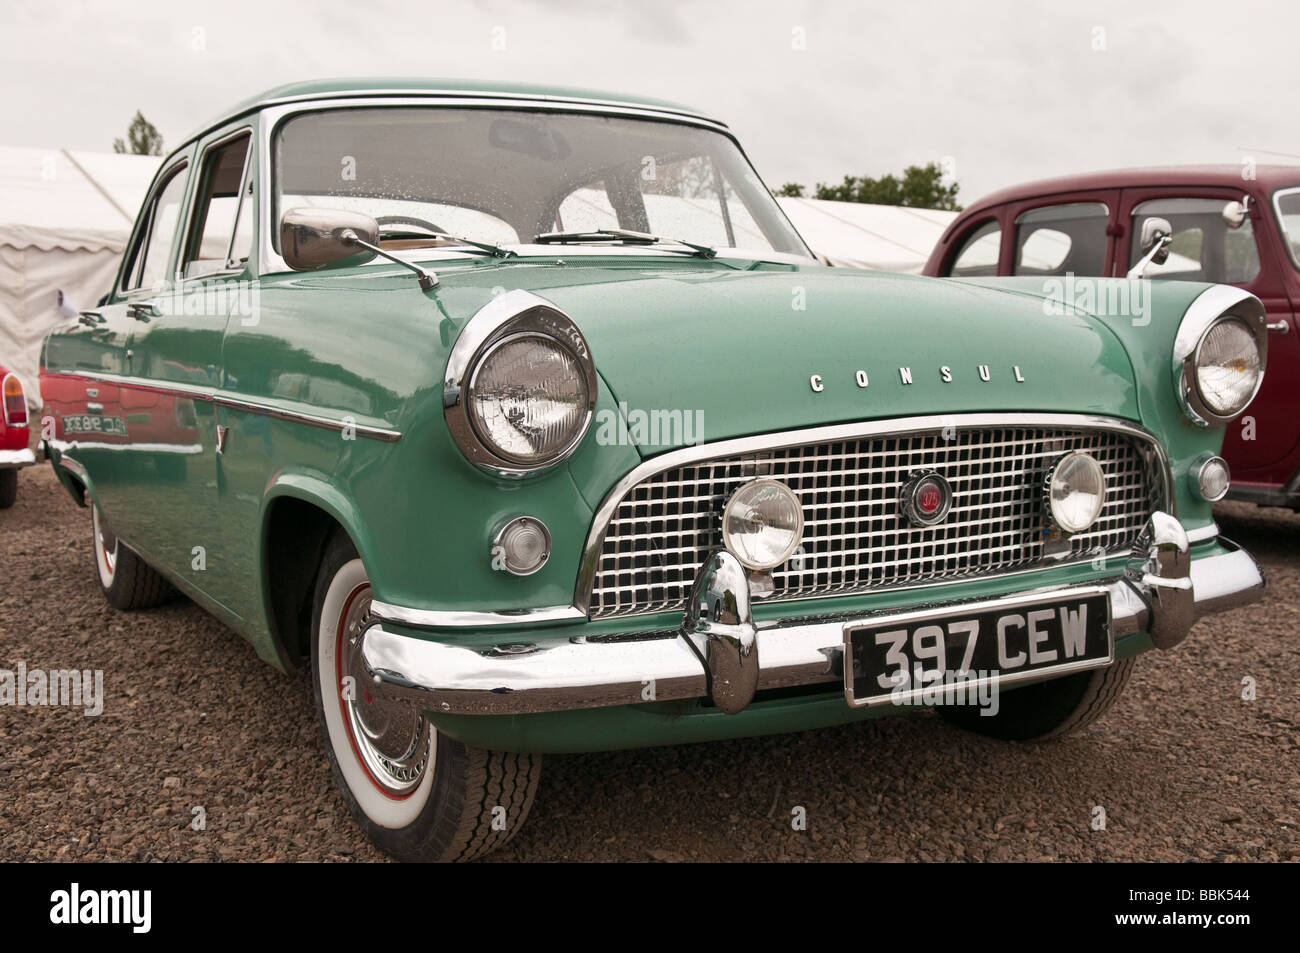 ford consul mark 1 made around 1951 1953 stock photo royalty free image 24392708 alamy. Black Bedroom Furniture Sets. Home Design Ideas